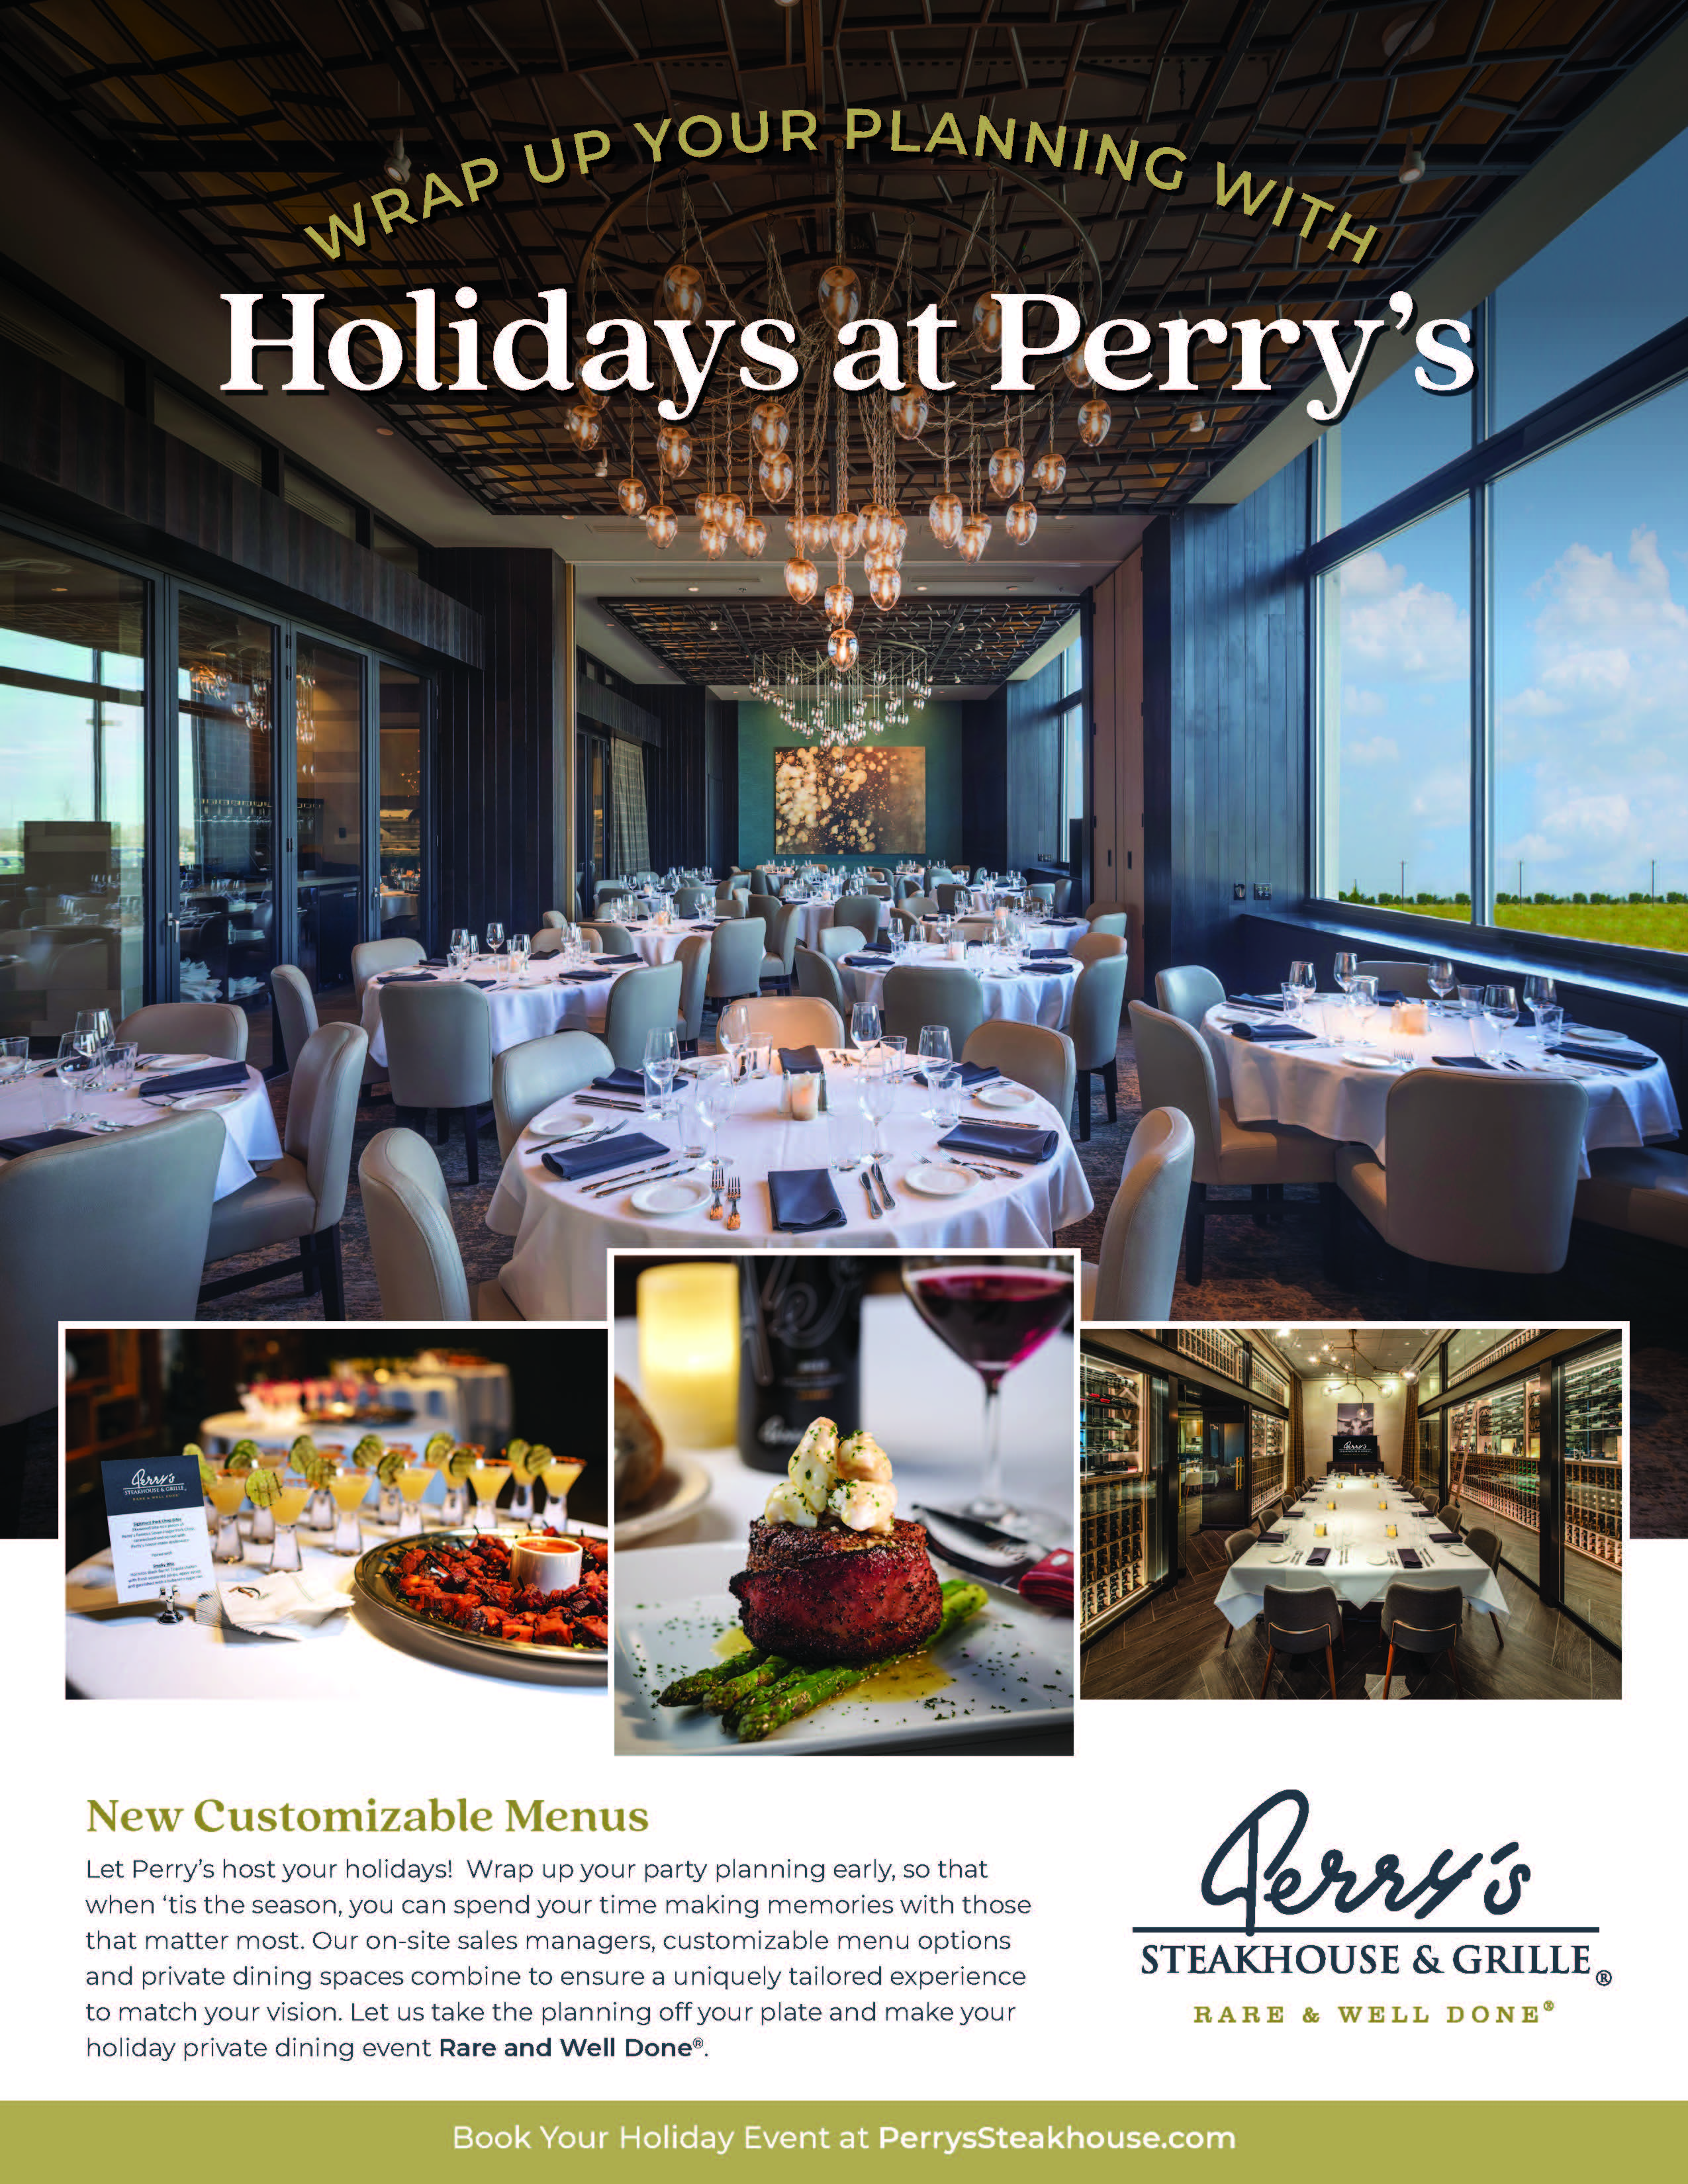 Holiday Planning from Perry's Steakhouse & Grille